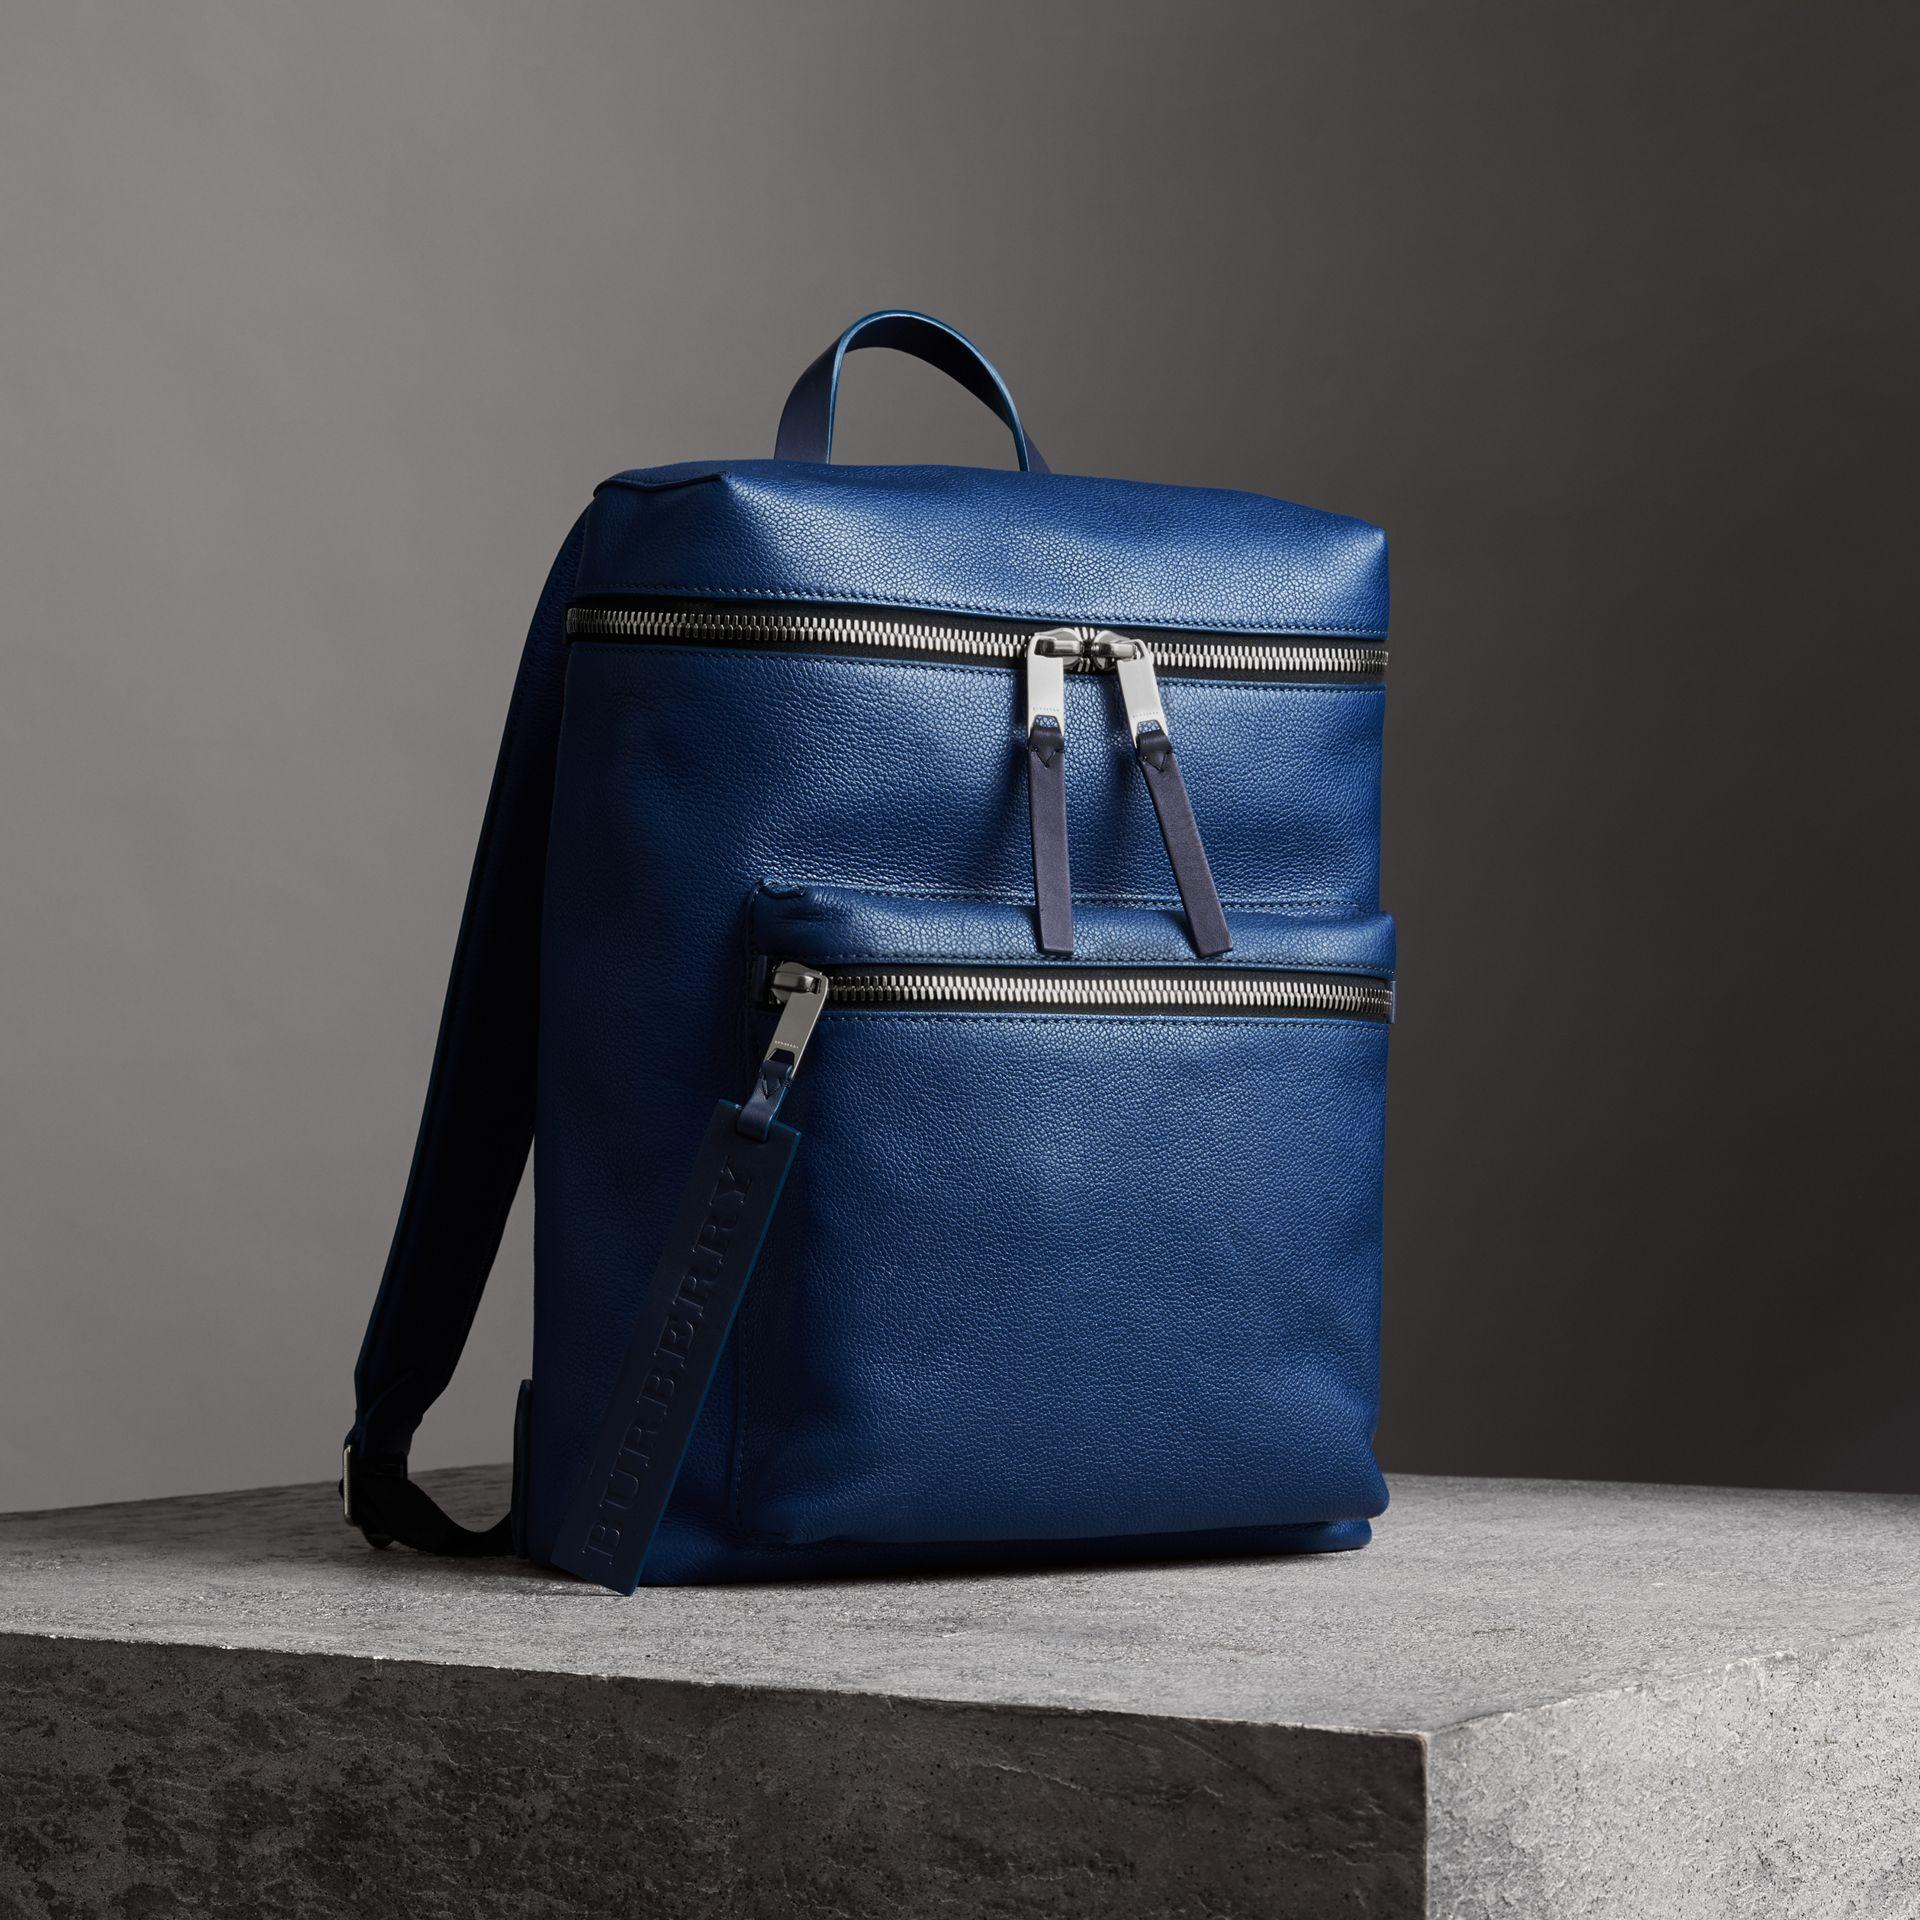 6af4aeb4e2dc Burberry Zip-Top Leather Backpack In Blue